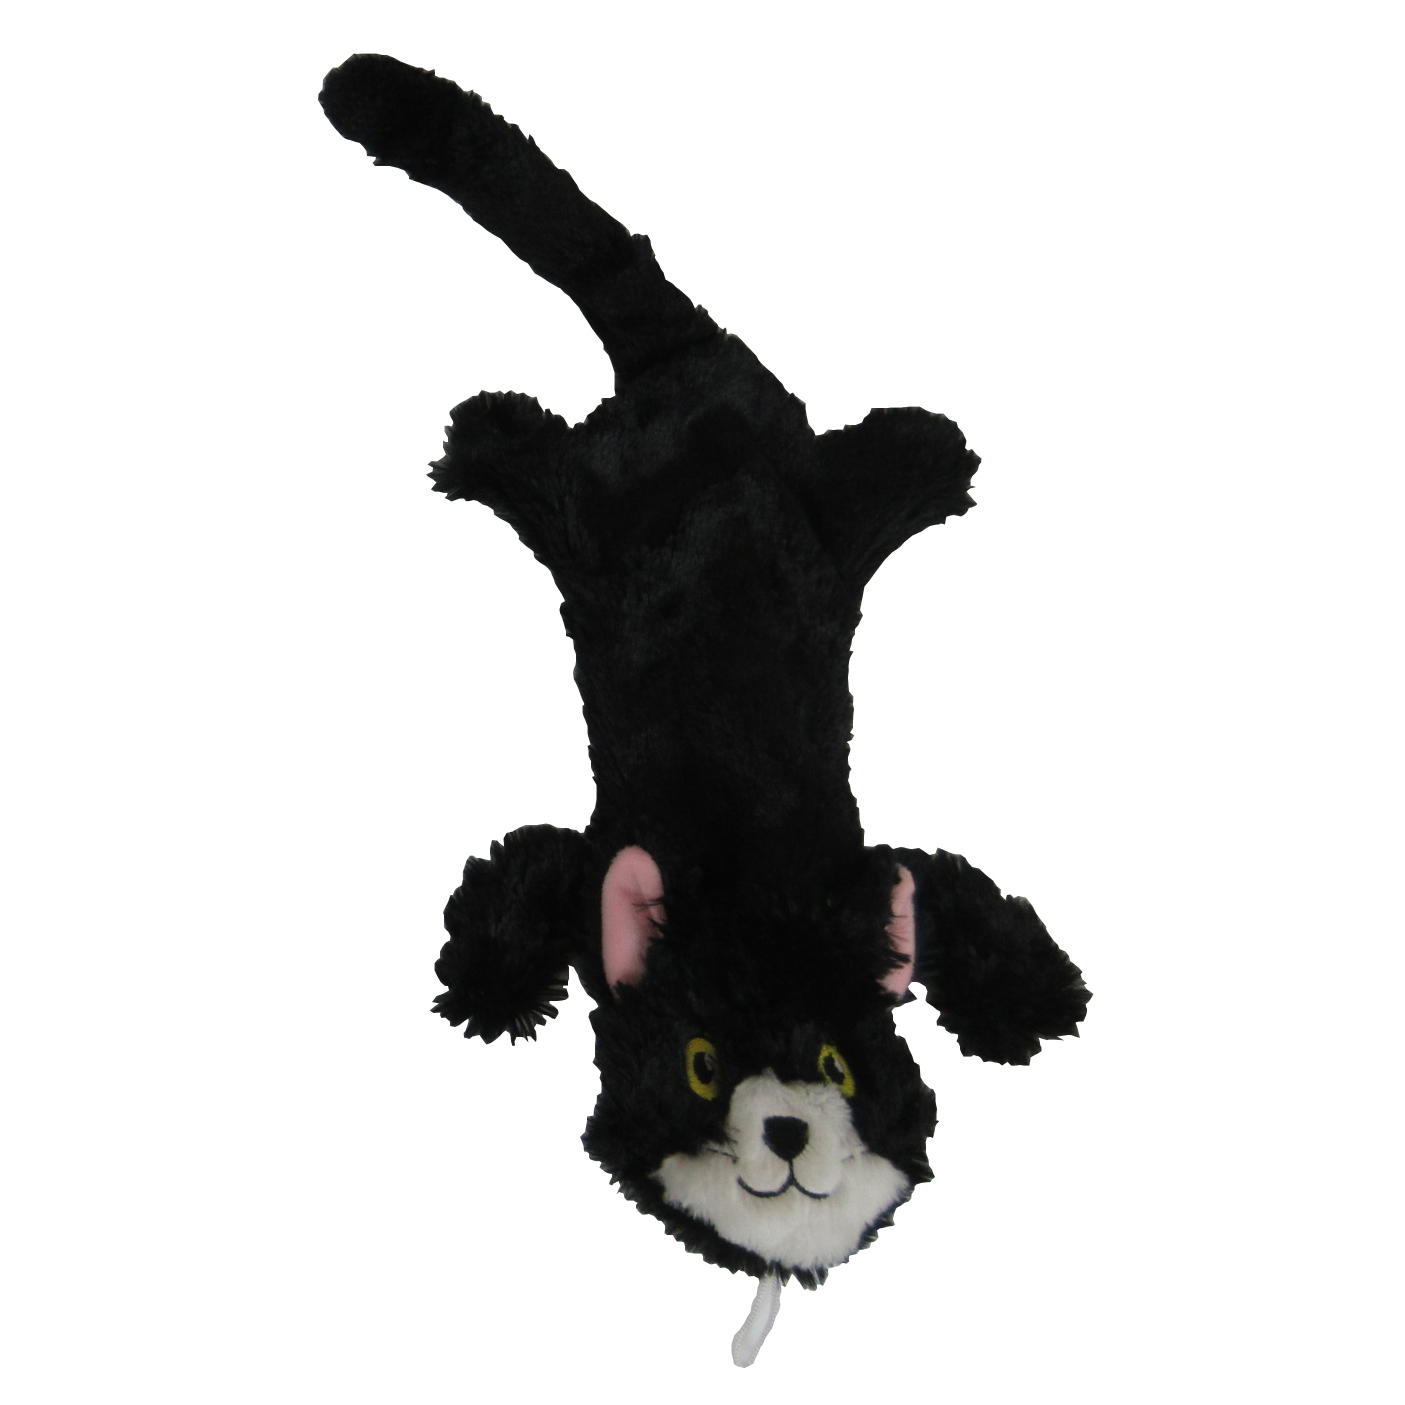 Steel Dog Flat Cat with Rope Dog Toy, Black